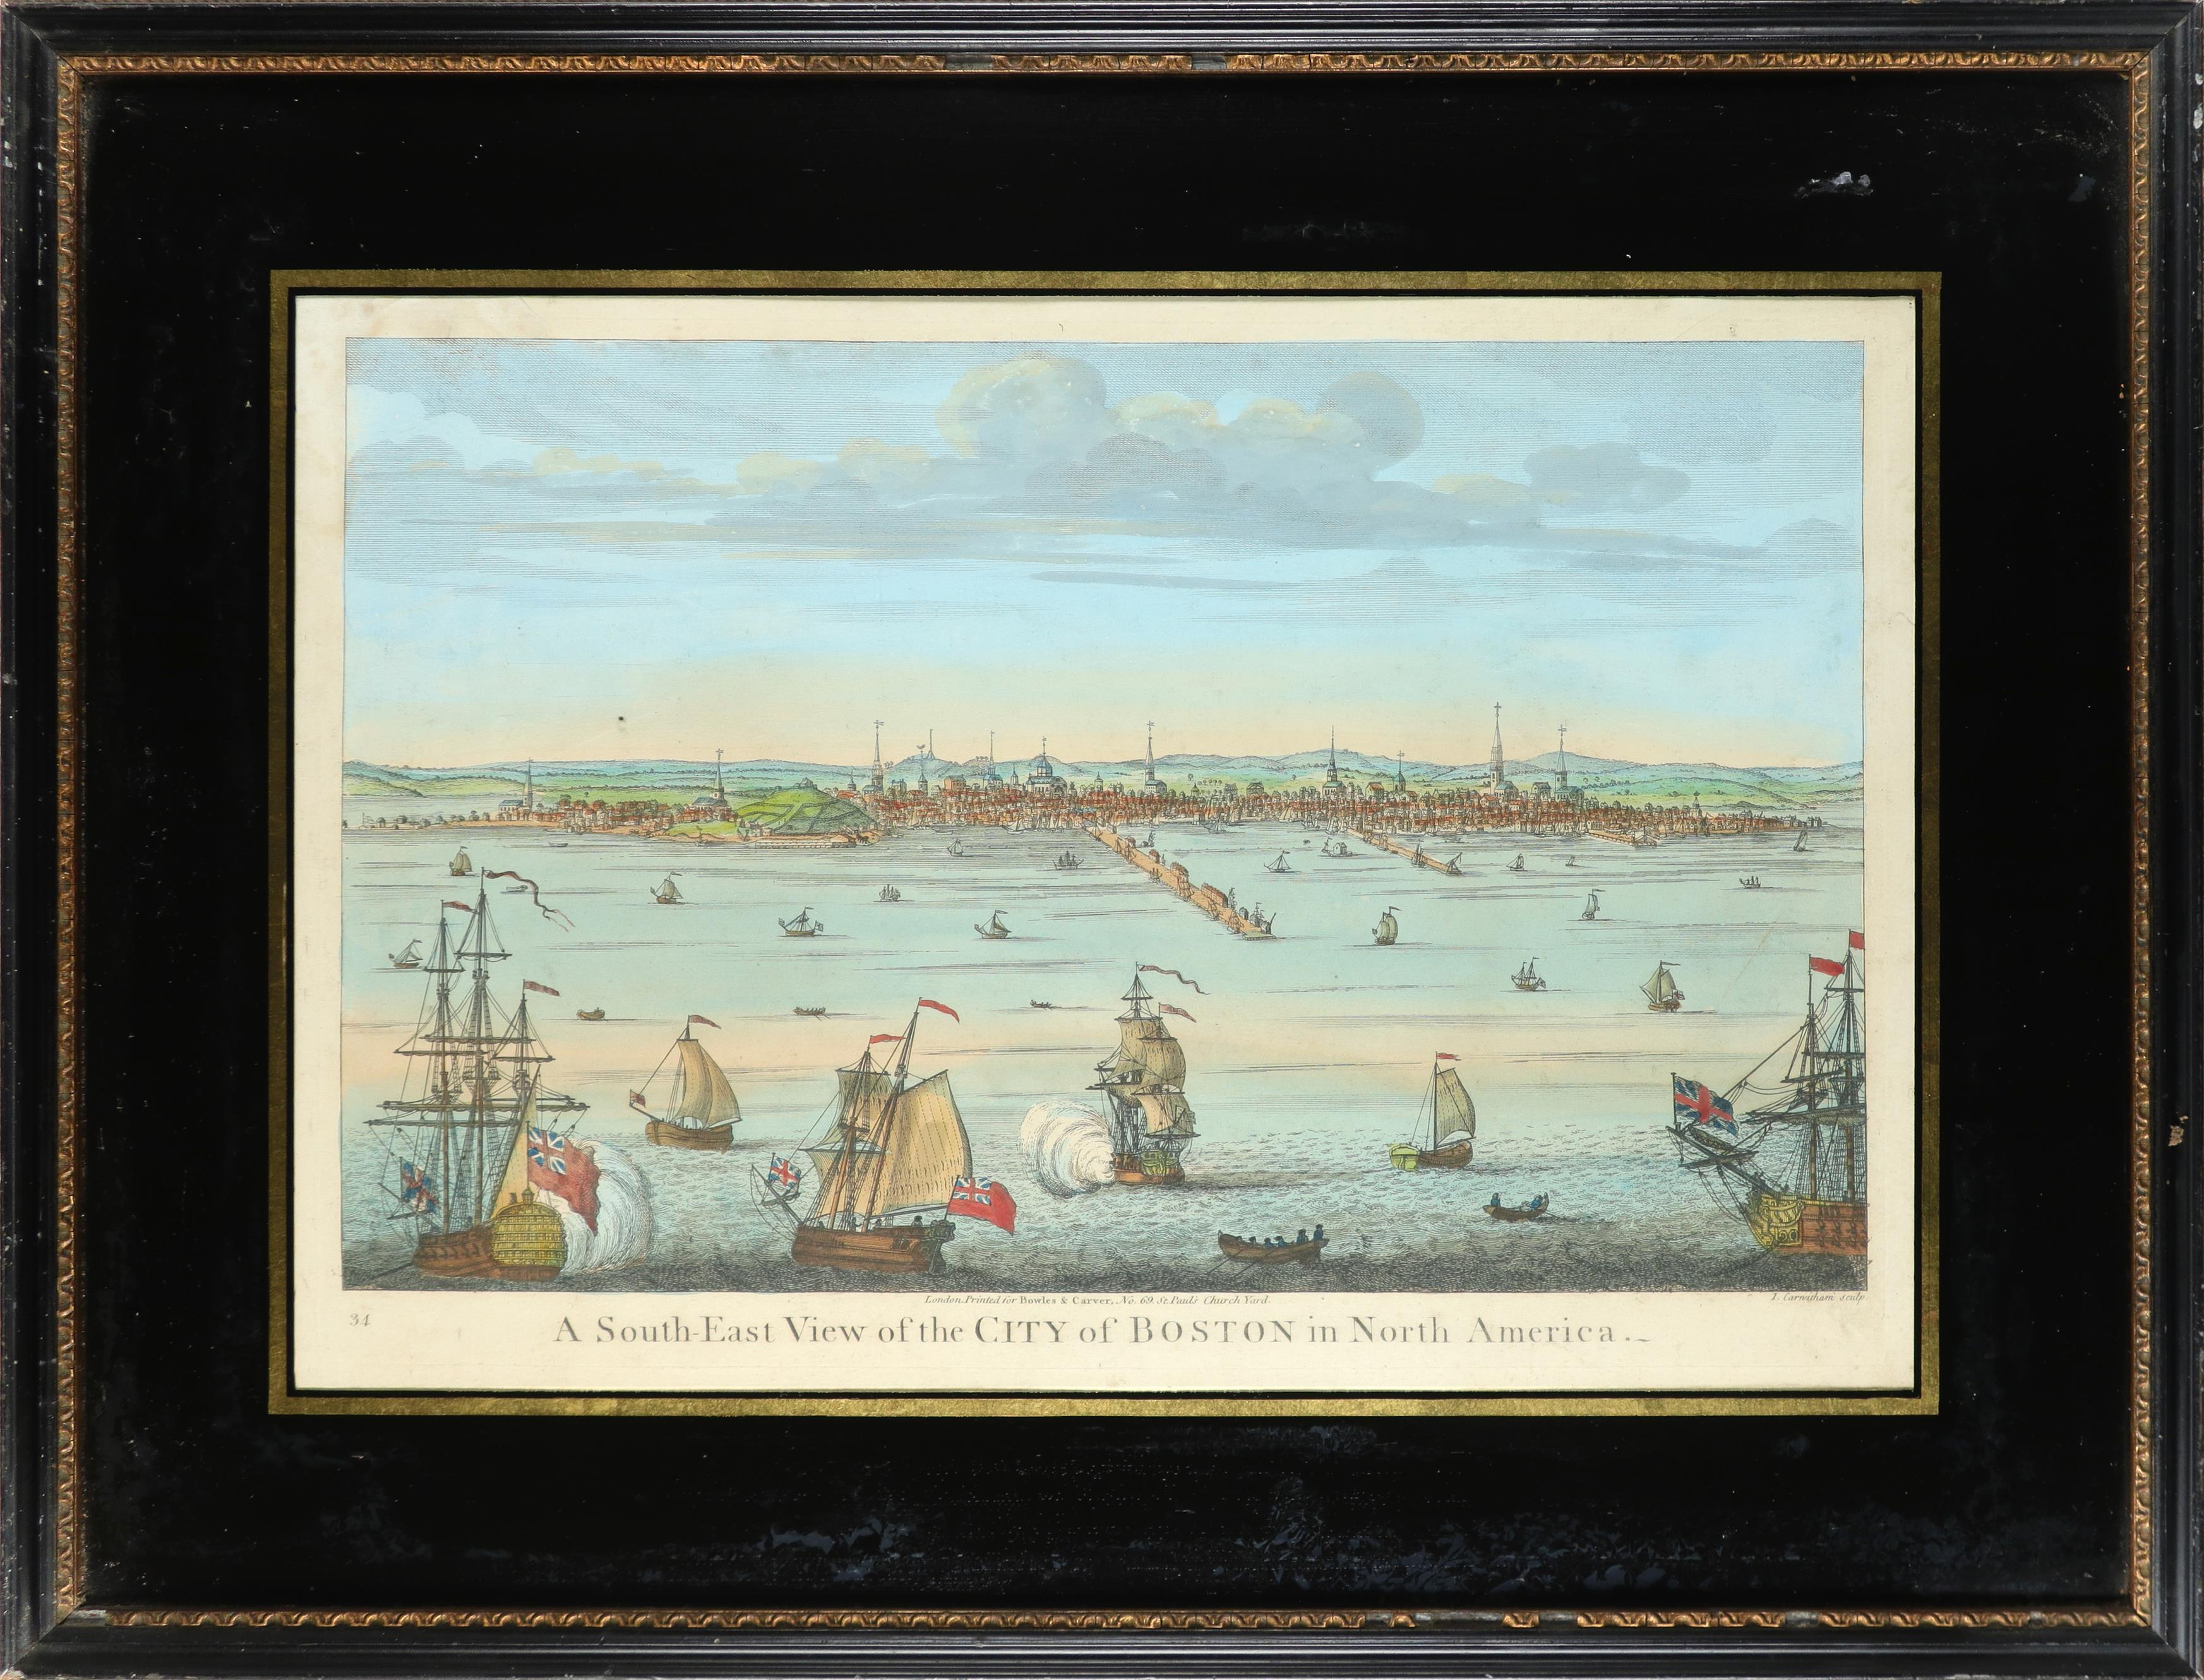 John Carwitham (act. 1723-1741) A South-East View of the City of Boston in North America Engraving - Image 2 of 9